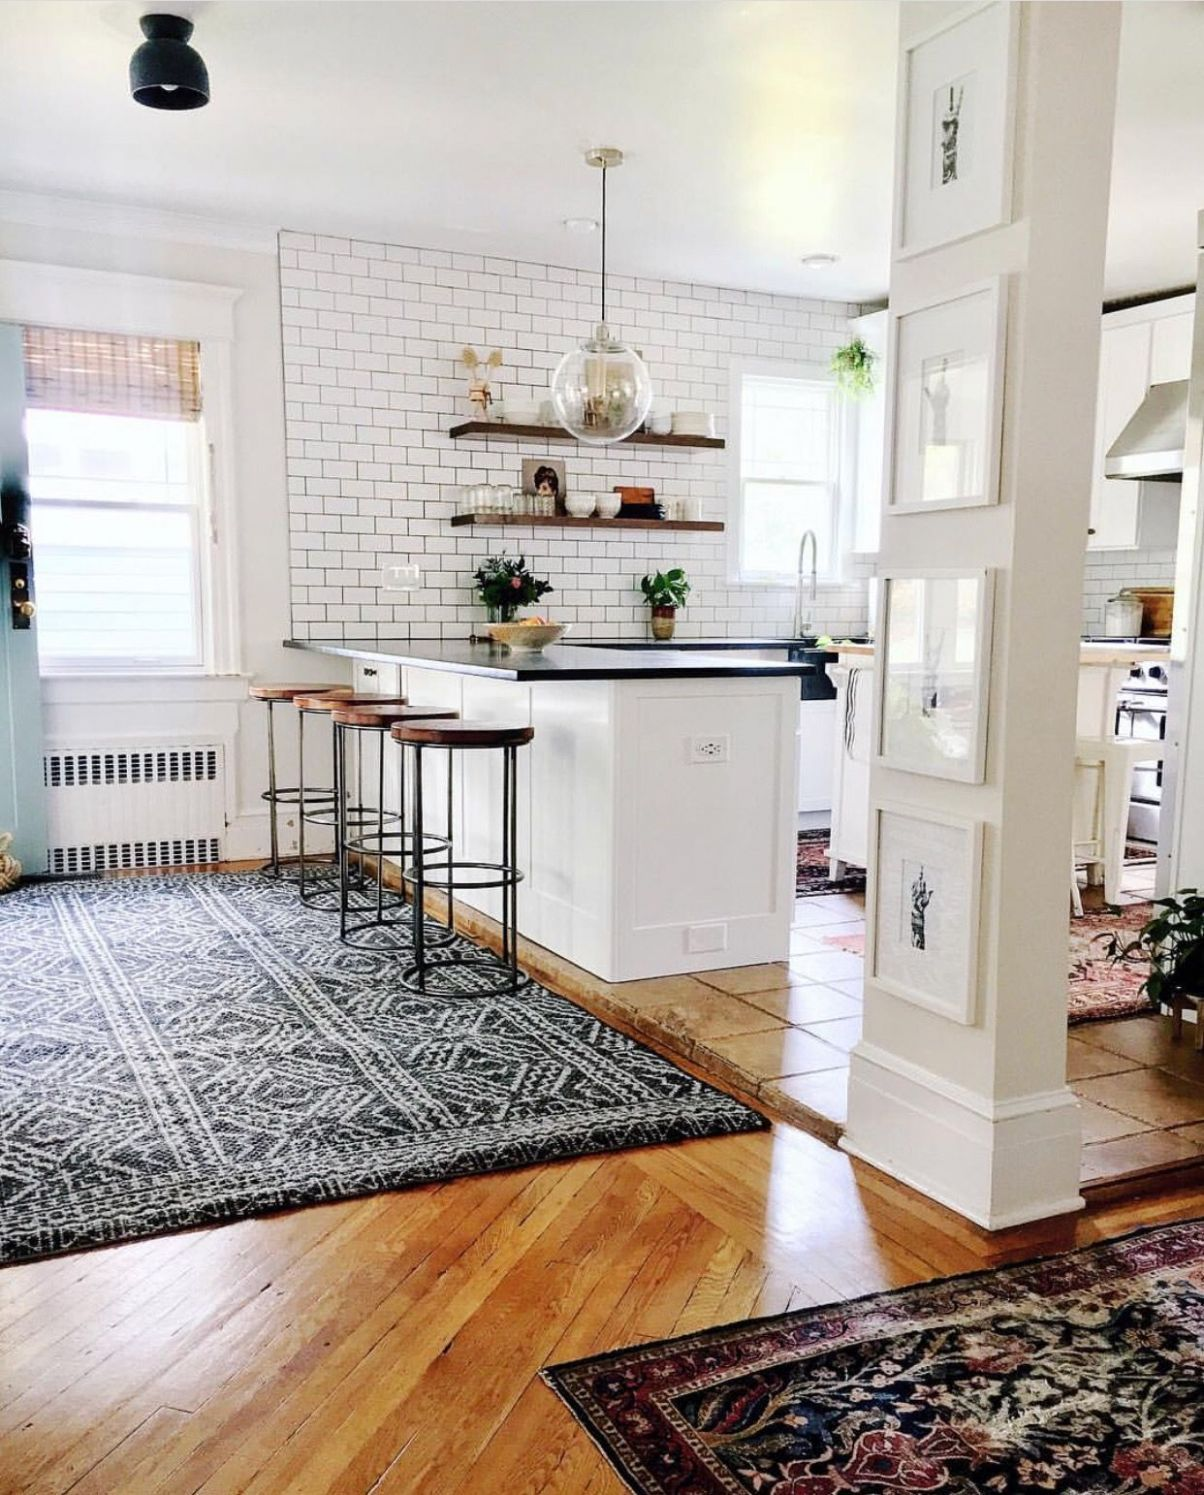 Captivating Simple Tips for Kitchen Frames and Decorations | Open ...